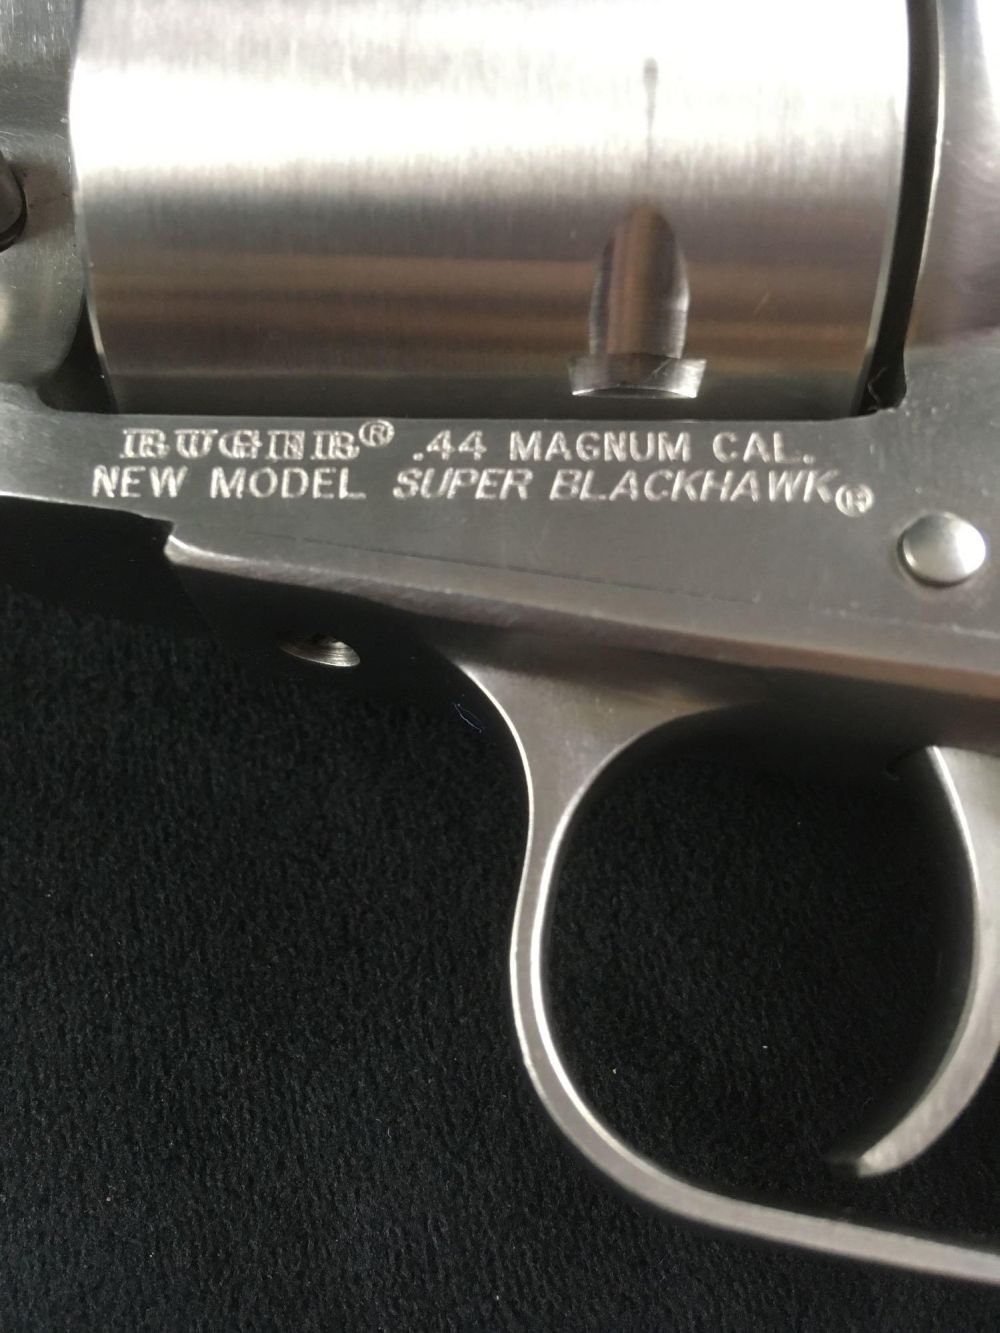 Lot 1016: 44 Magnum Revolver Pistol Ruger Super Blackhawk in Stainless Steel